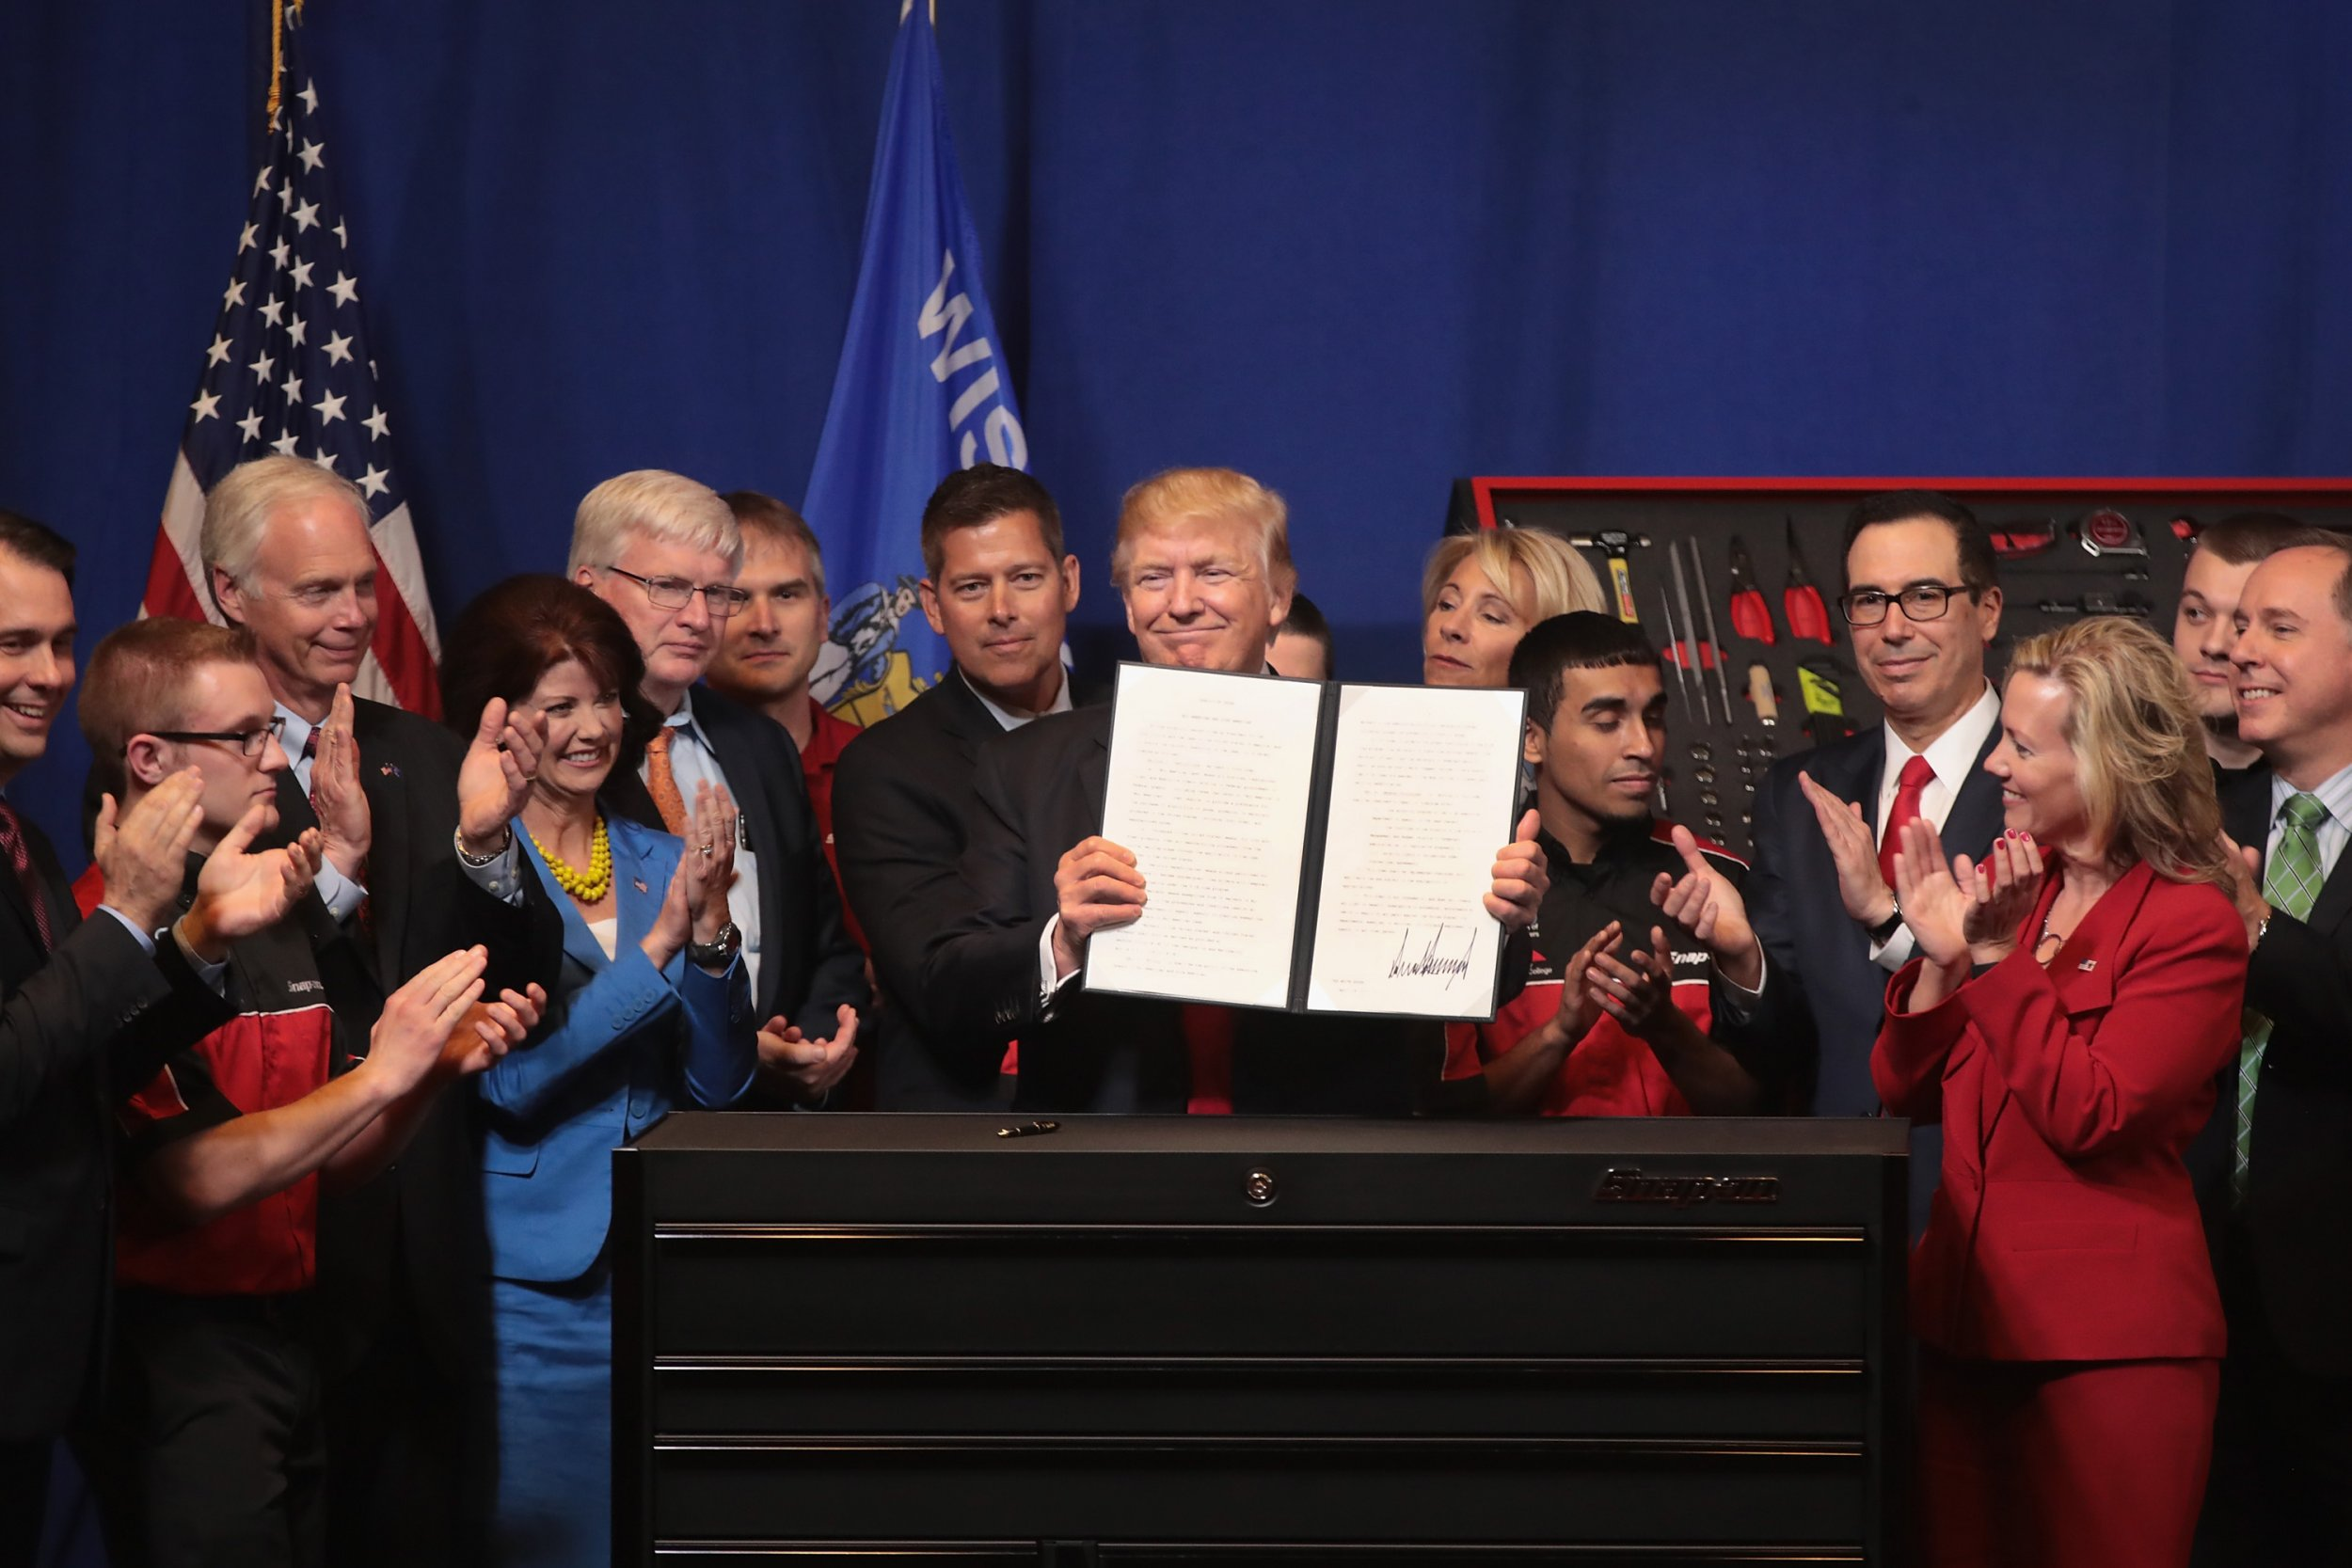 Indian Immigrants Wait 150 Years for Green Card Through EB-2 Visas